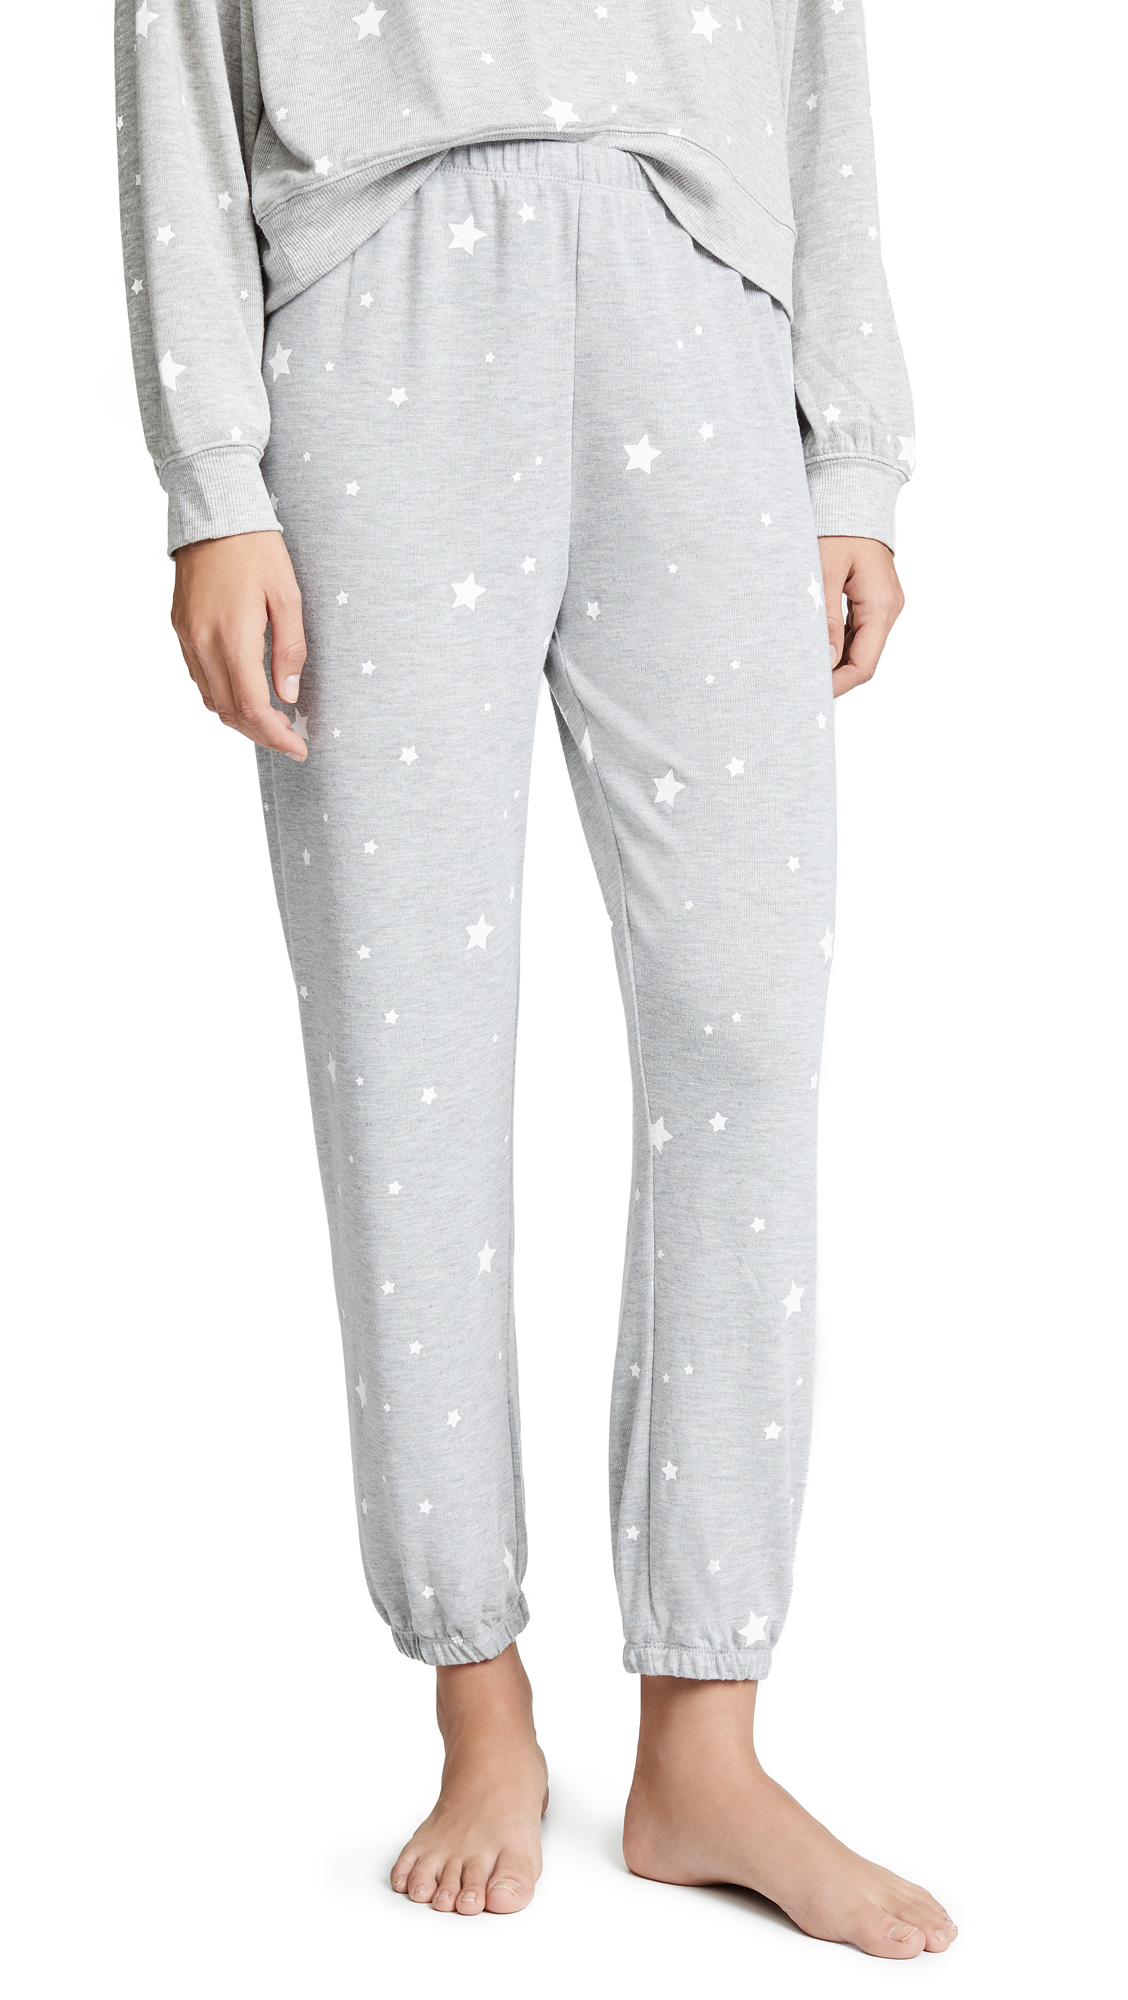 Z SUPPLY Star Print Joggers in Heather Grey